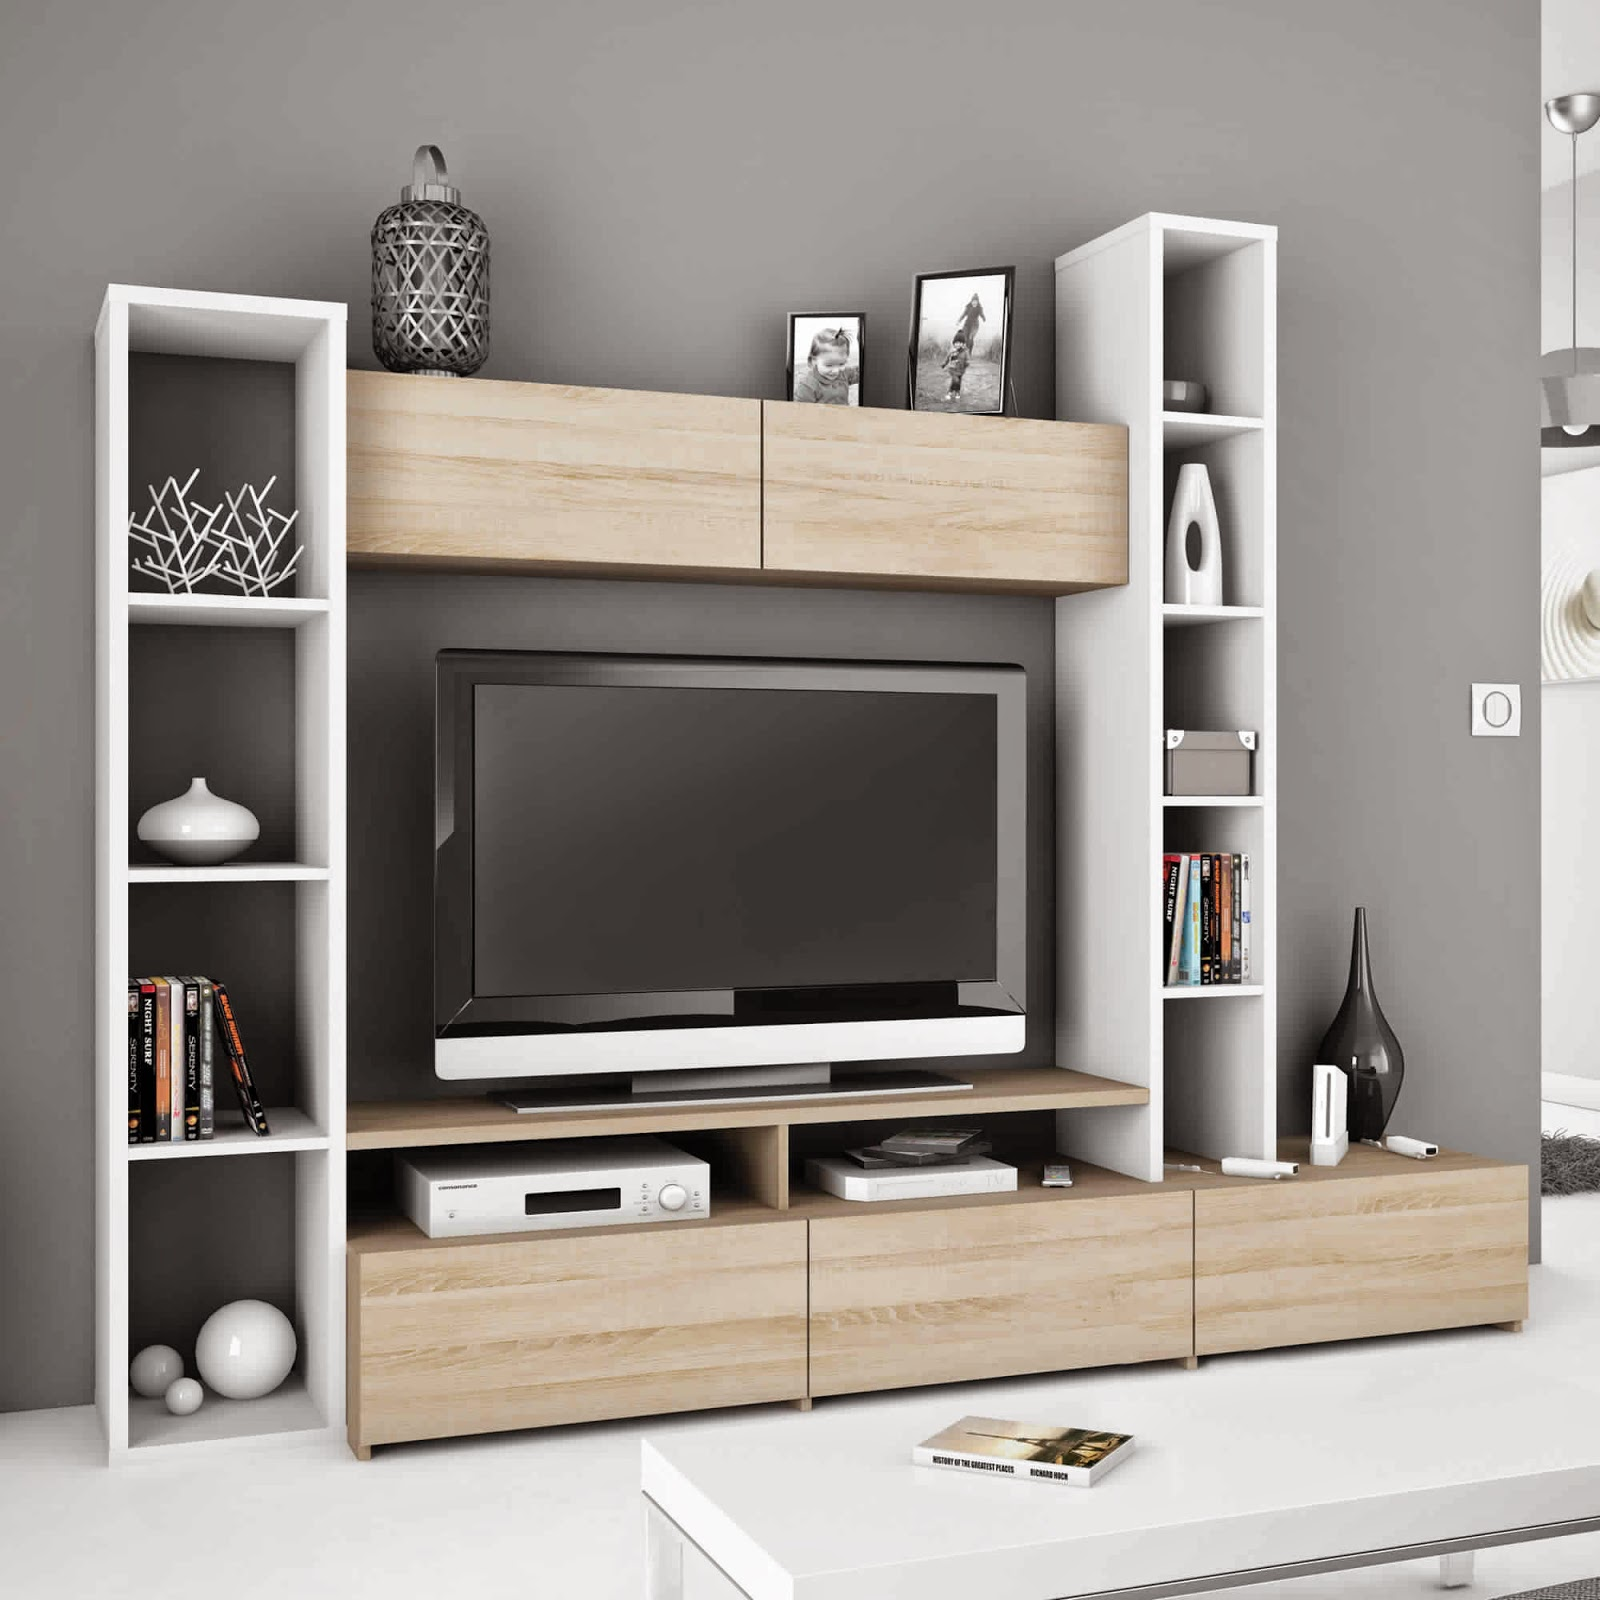 meuble tv conforama noir et blanc free meuble tv avec fixation integree comment cacher les fils. Black Bedroom Furniture Sets. Home Design Ideas